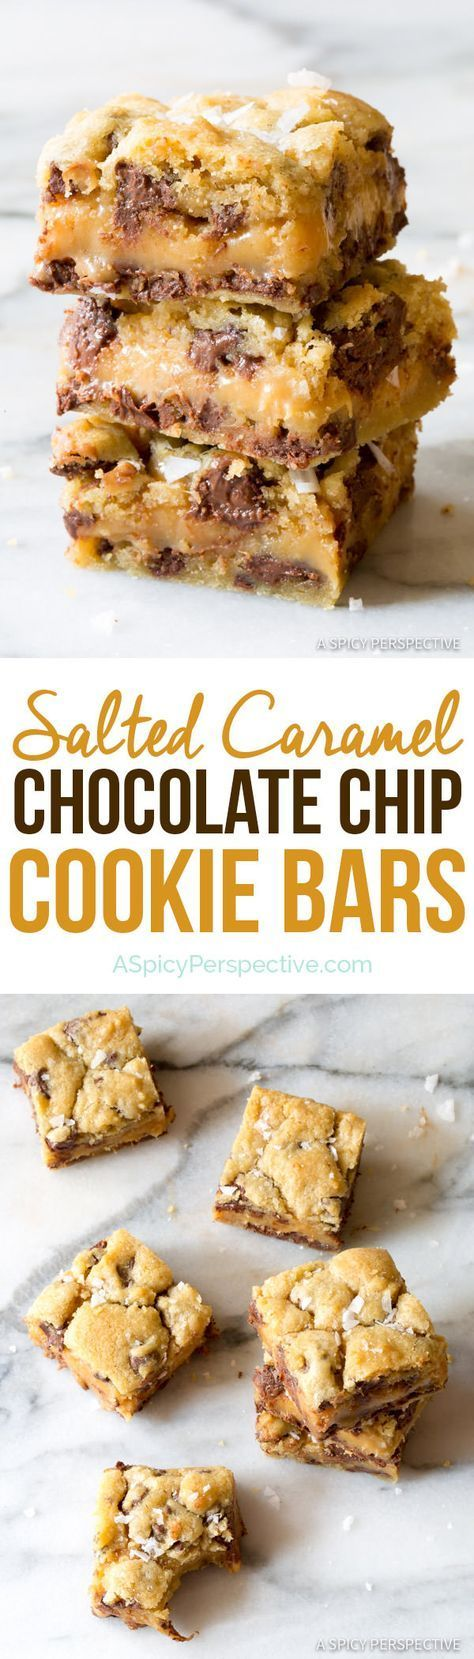 Irresistible Gooey Salted Caramel Chocolate Chip Cookie Bars | ASpicyPerspective...